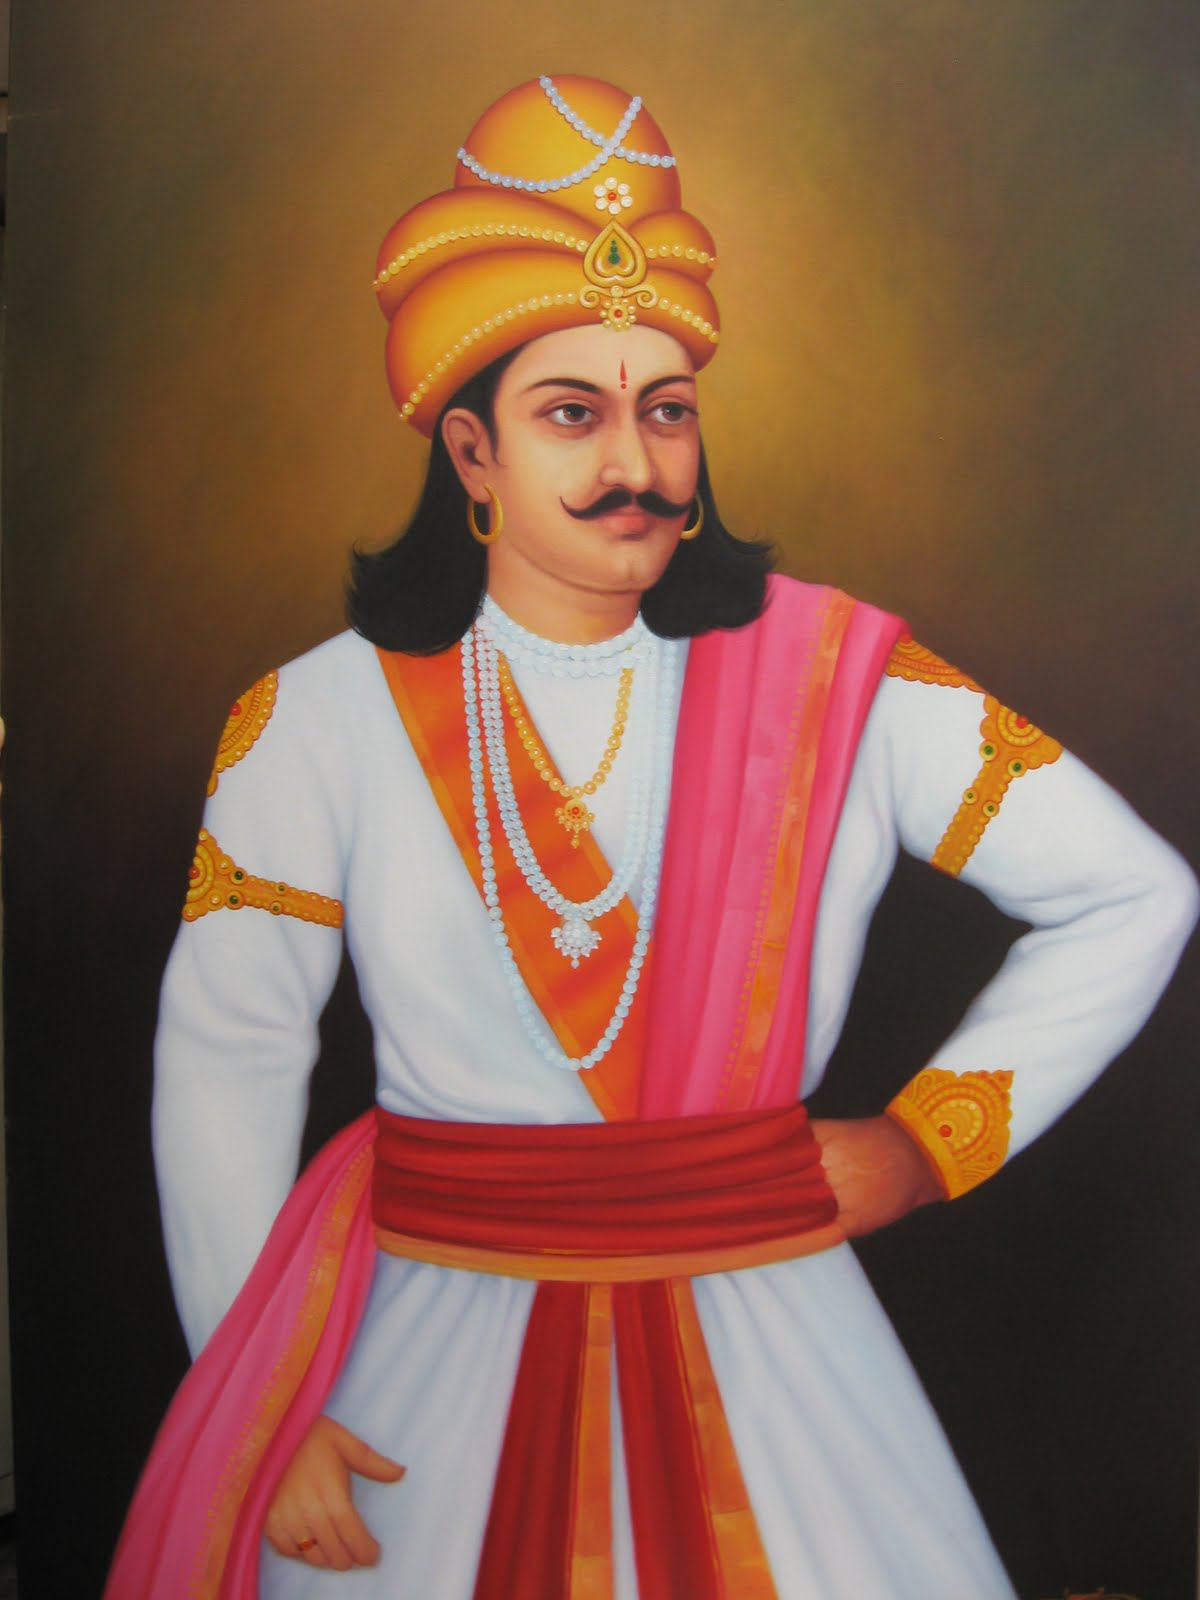 greatness of ashoka Devanampriya priyadarshi samrat ashoka (also asoka, ashoka maurya) was the grandson of chandragupta maurya and the son of the second maurya emperor, bindusara the year of birth of ashoka.